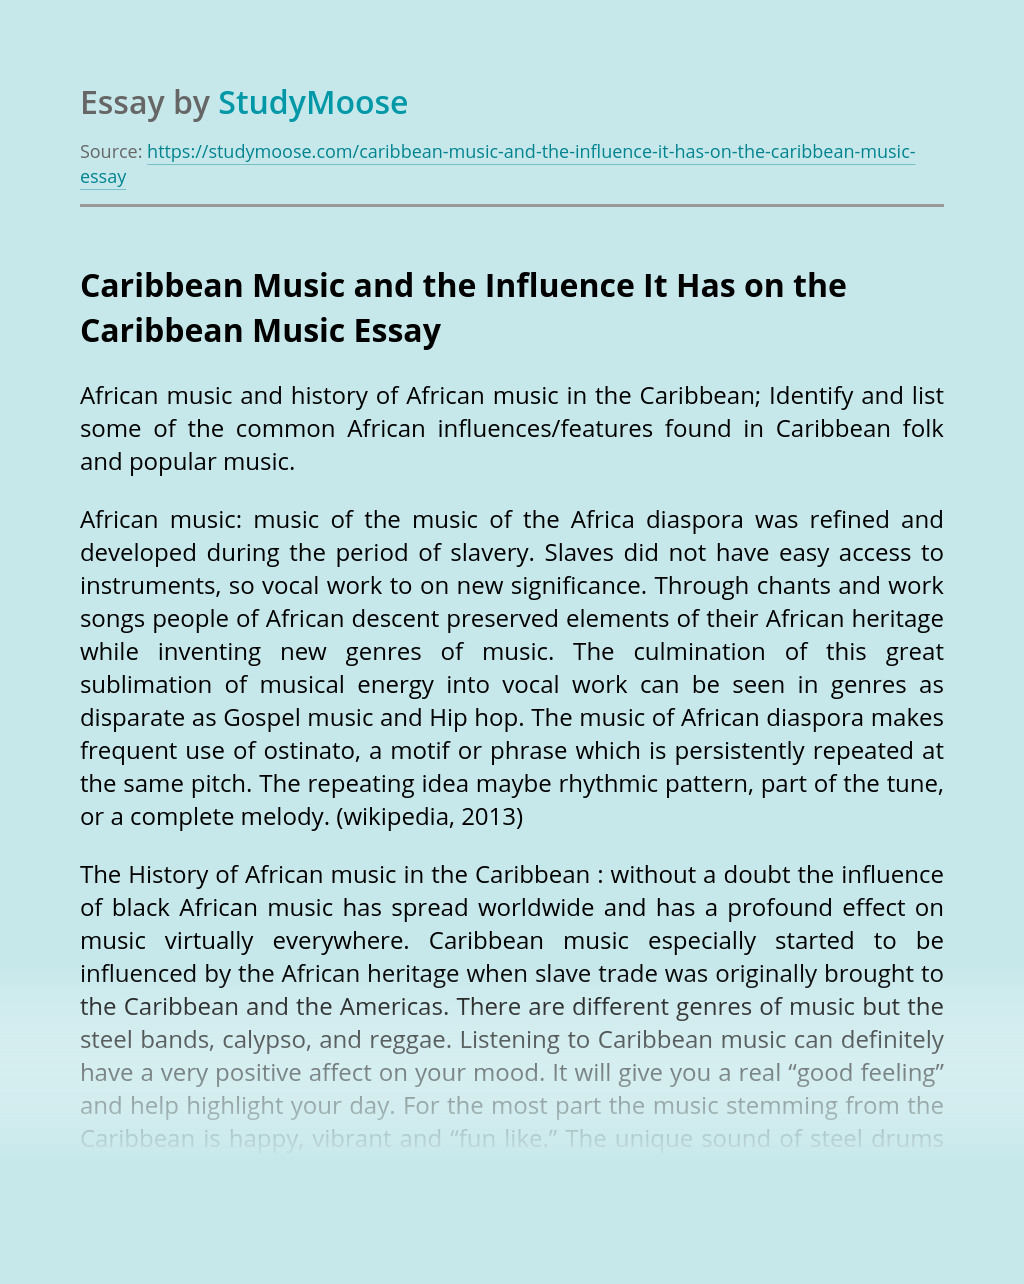 Caribbean Music and the Influence It Has on the Caribbean Music